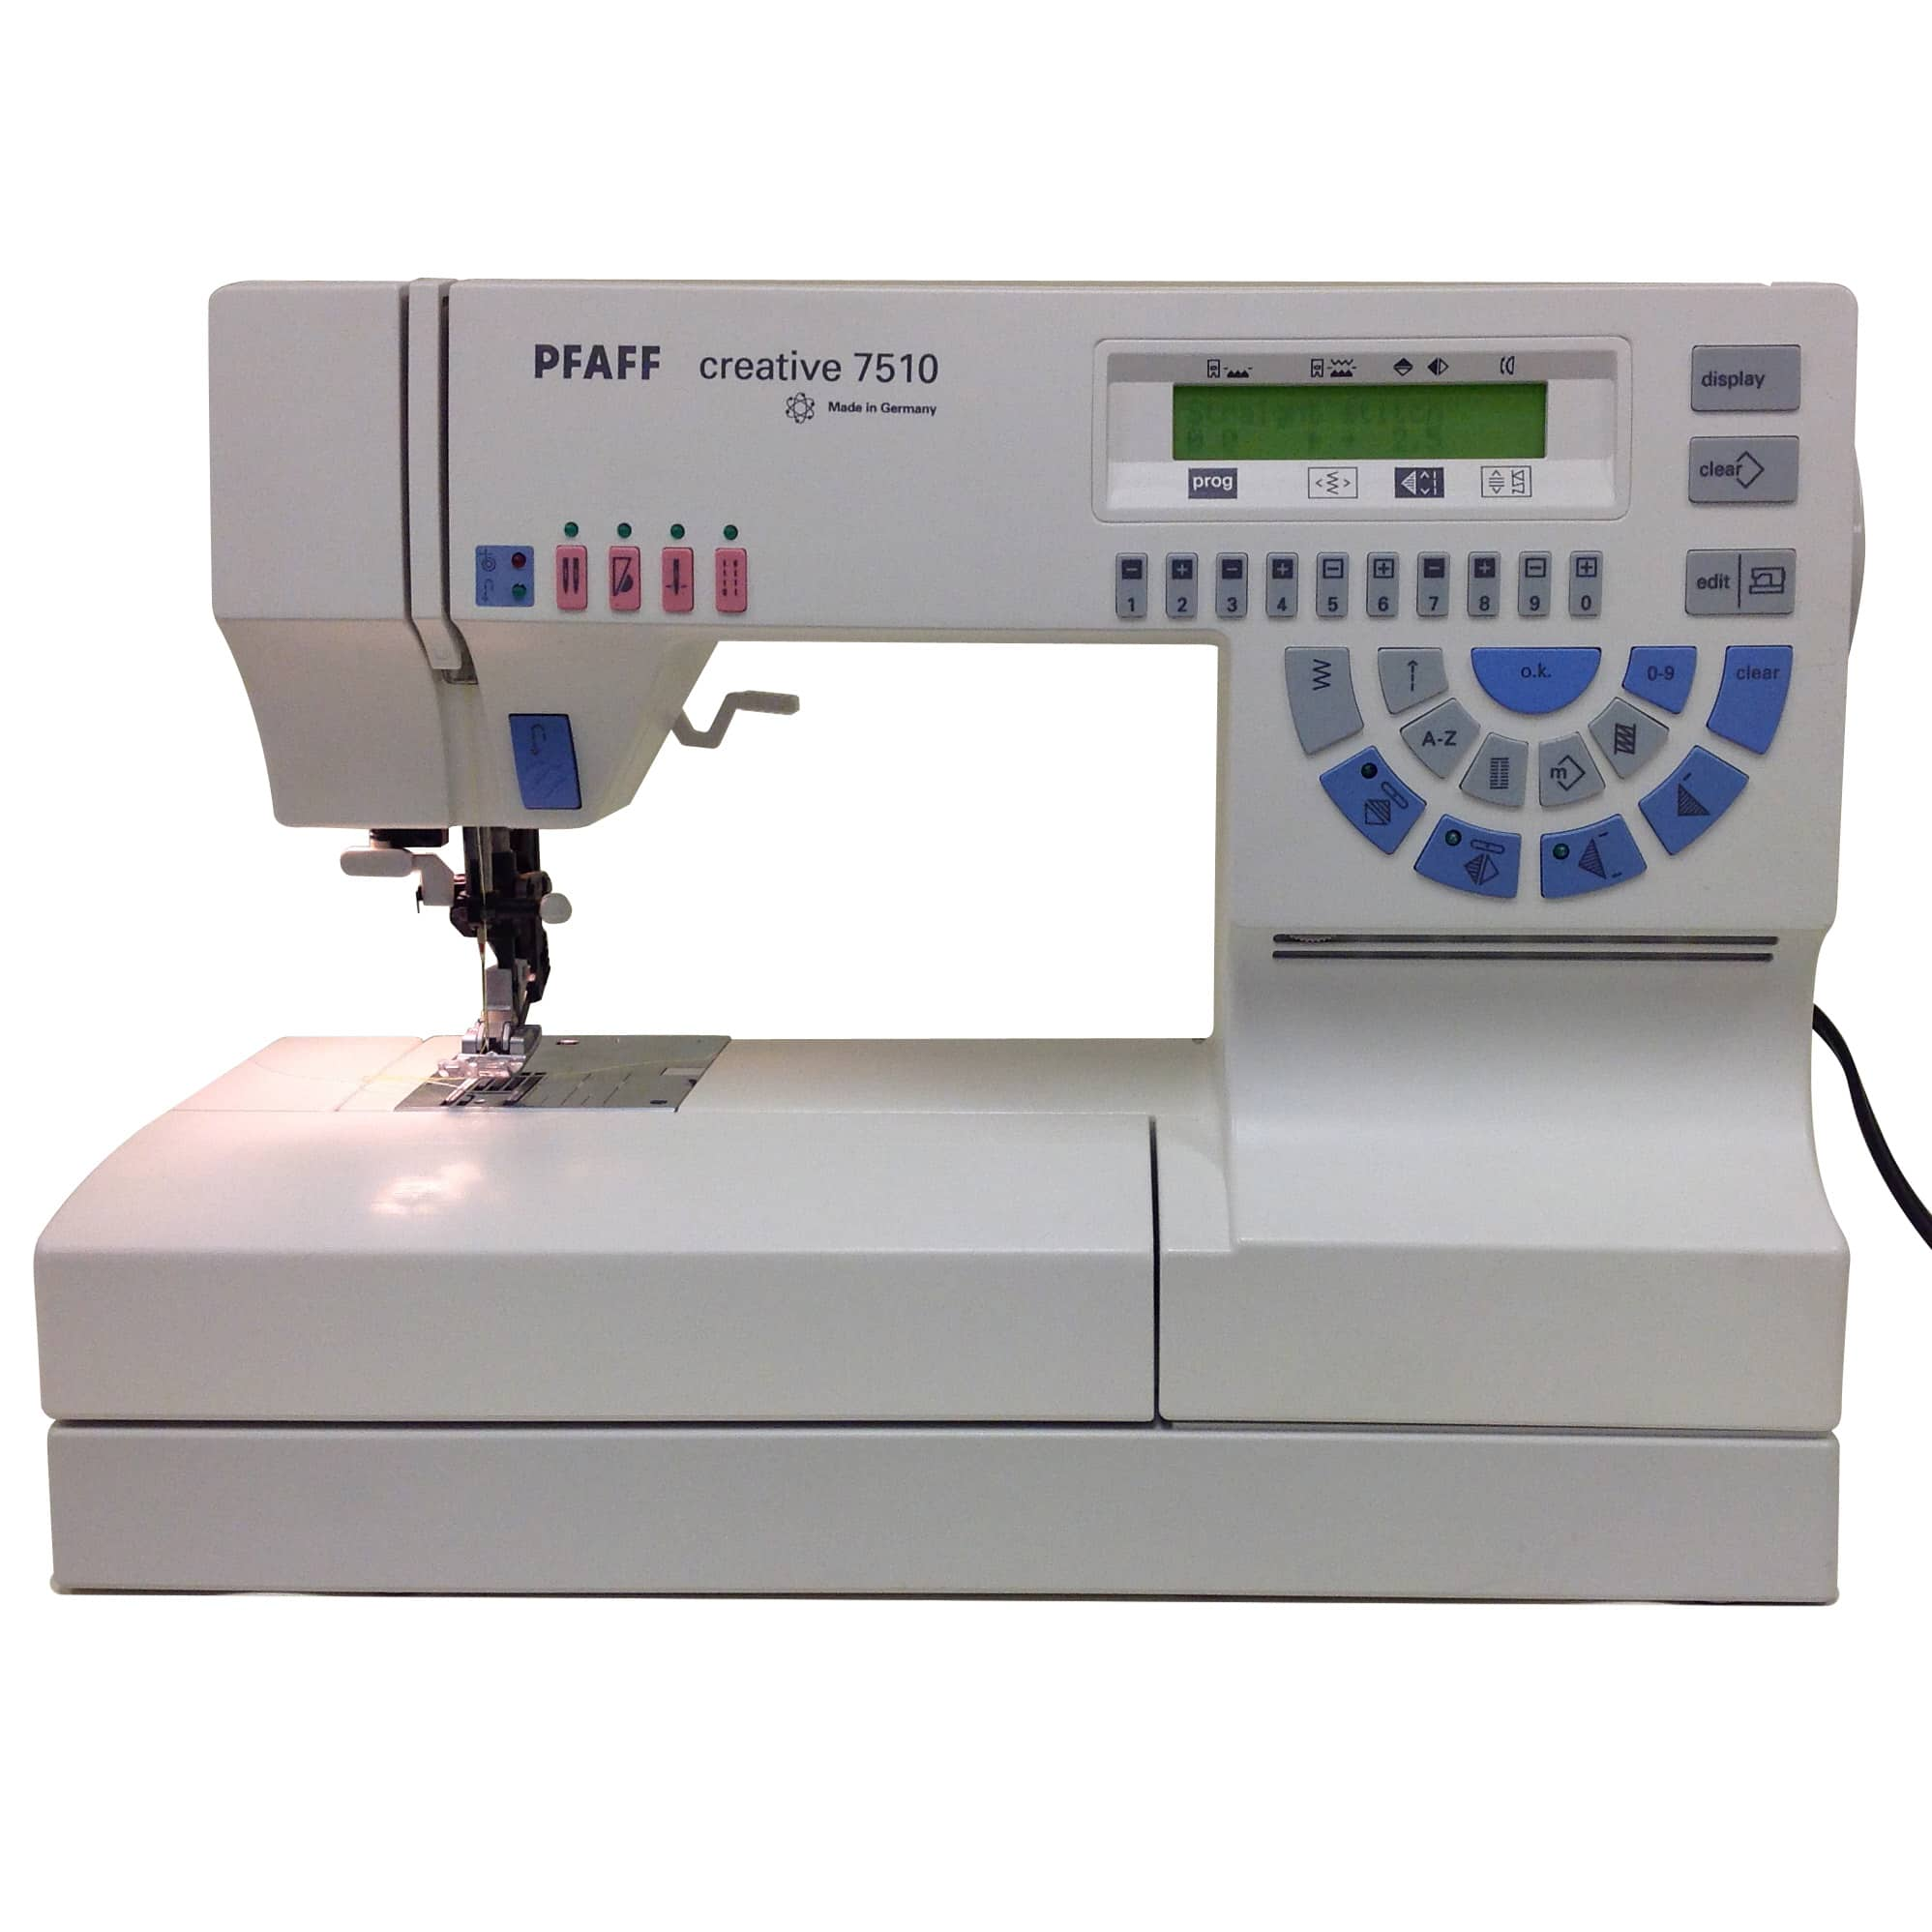 Pfaff Creative 7510 With Idt Reconditioned With Warranty